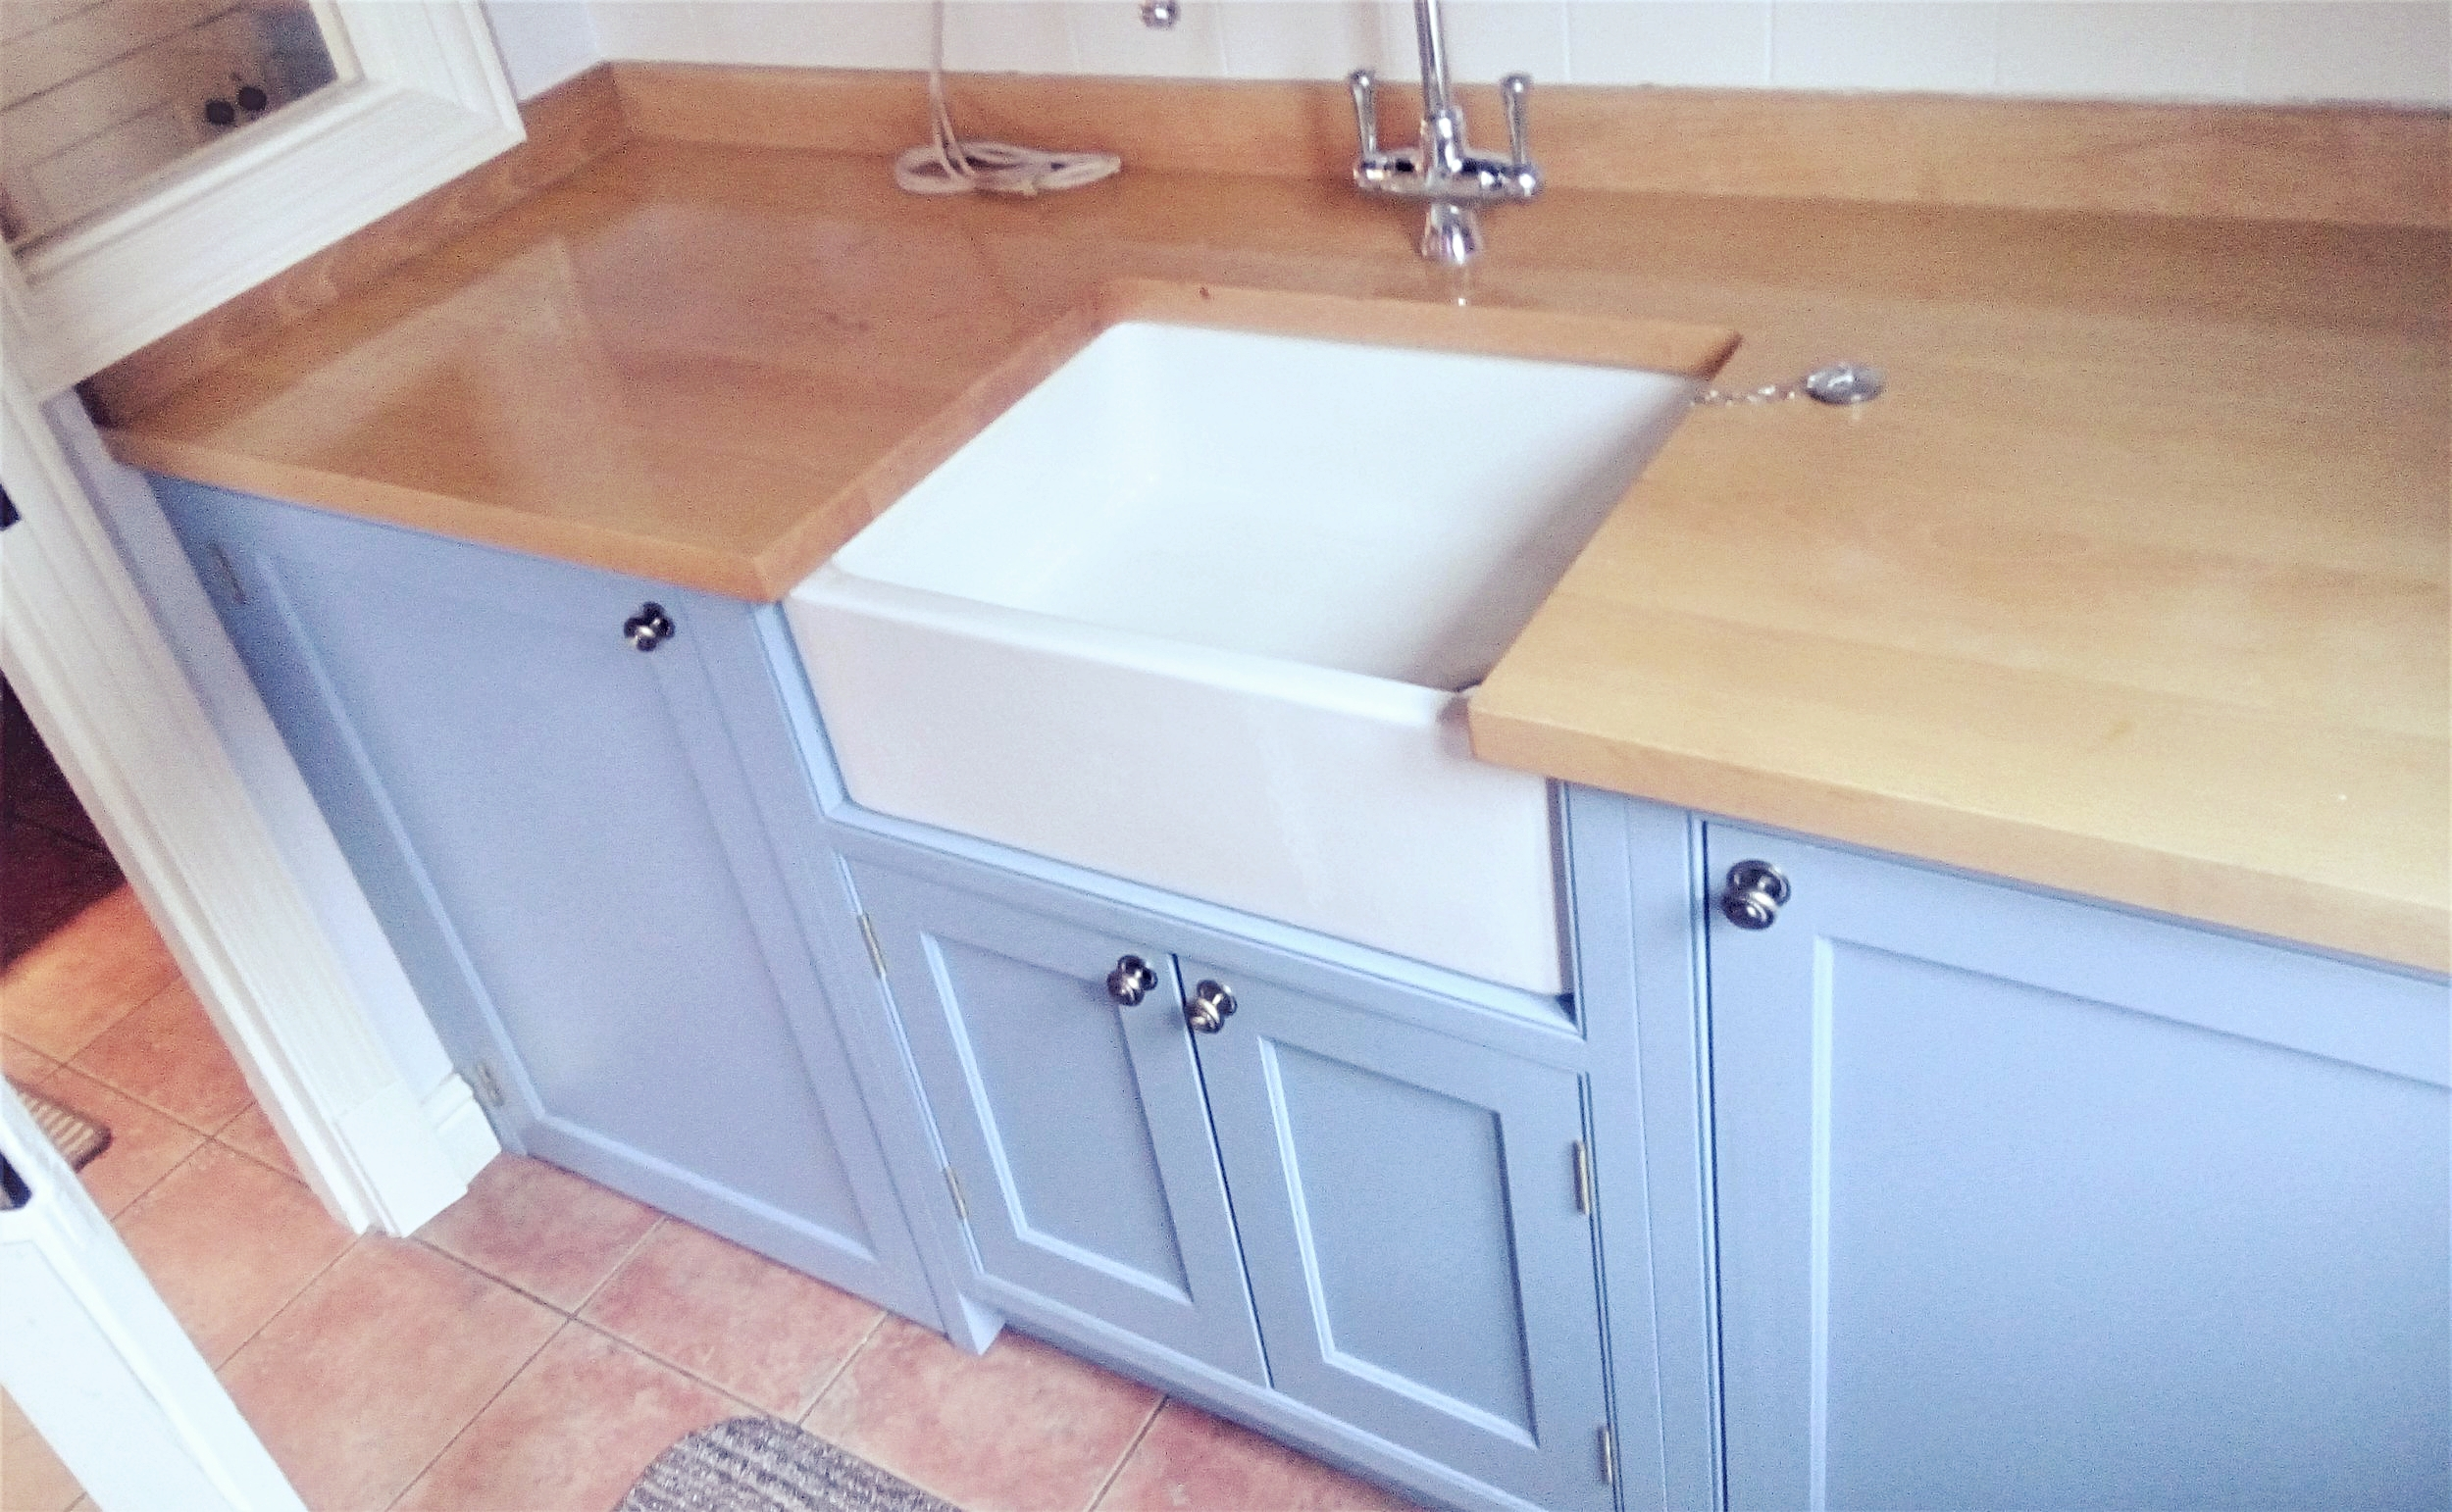 Bespoke fitted Belfast sink unit, with concealed washer and dryer housings either side.